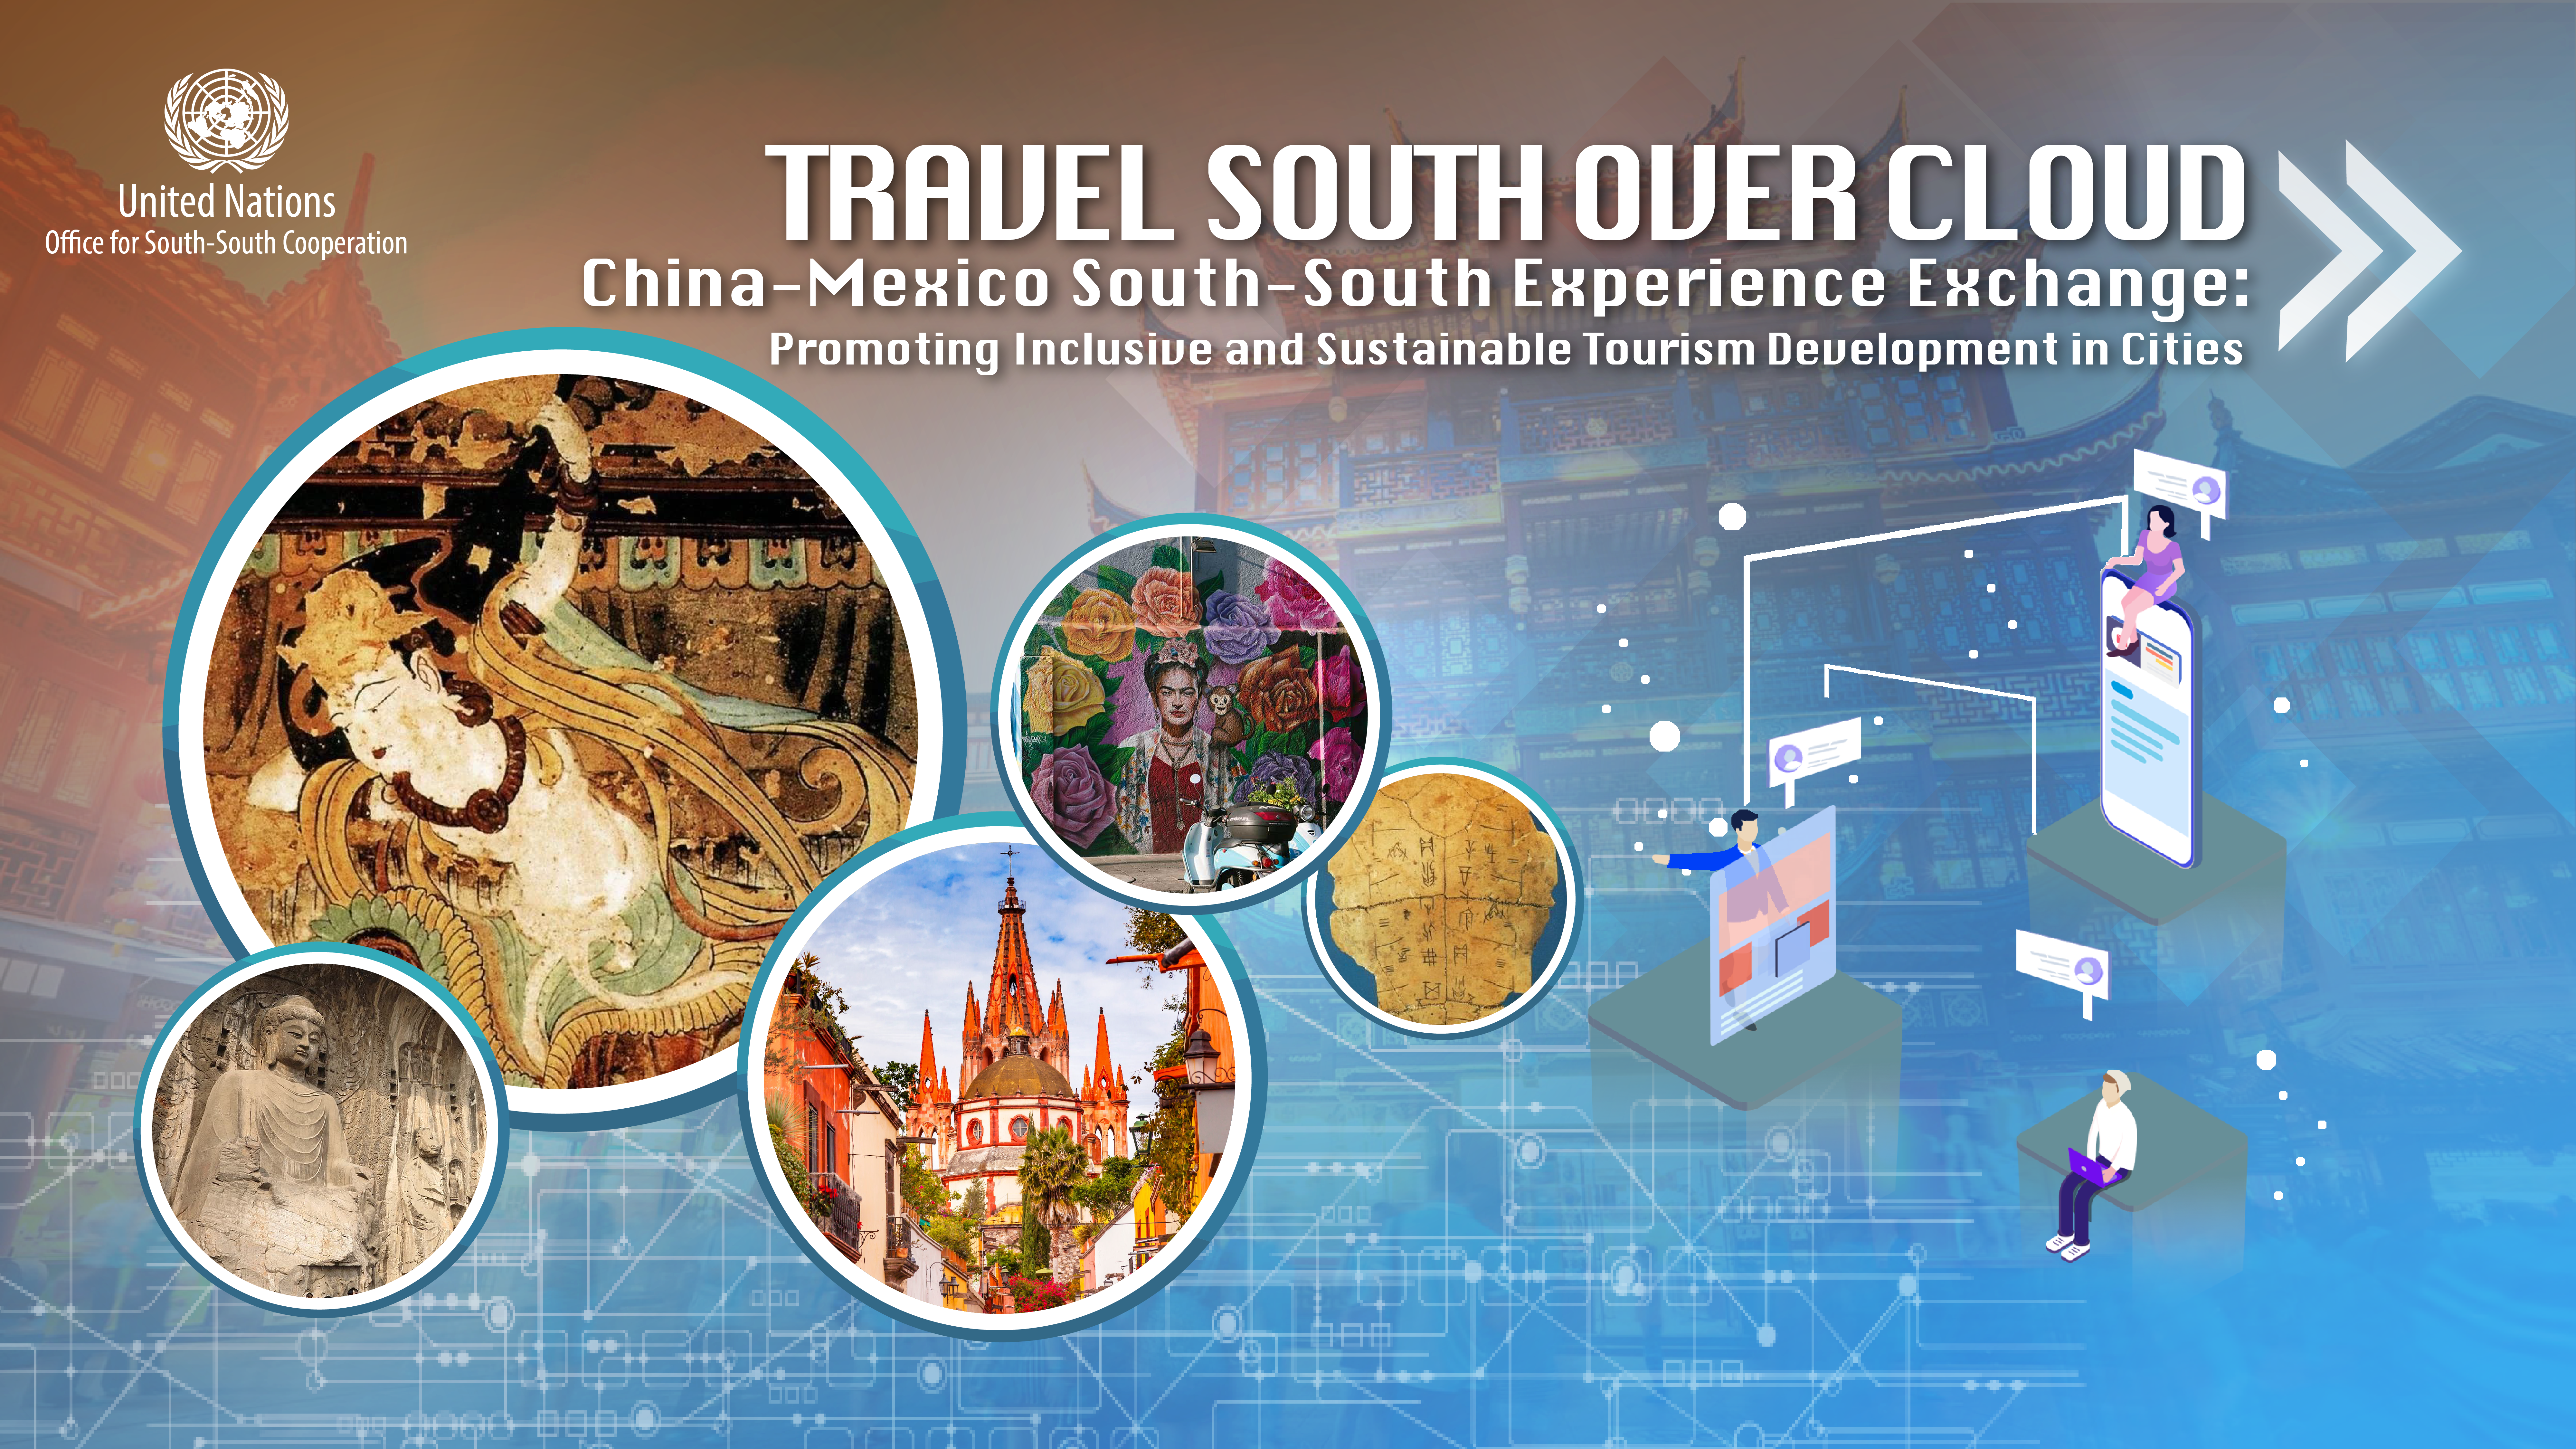 Travel South over Cloud – China-Mexico South-South Experience Exchange: Promoting Inclusive and Sustainable Tourism Development in Cities